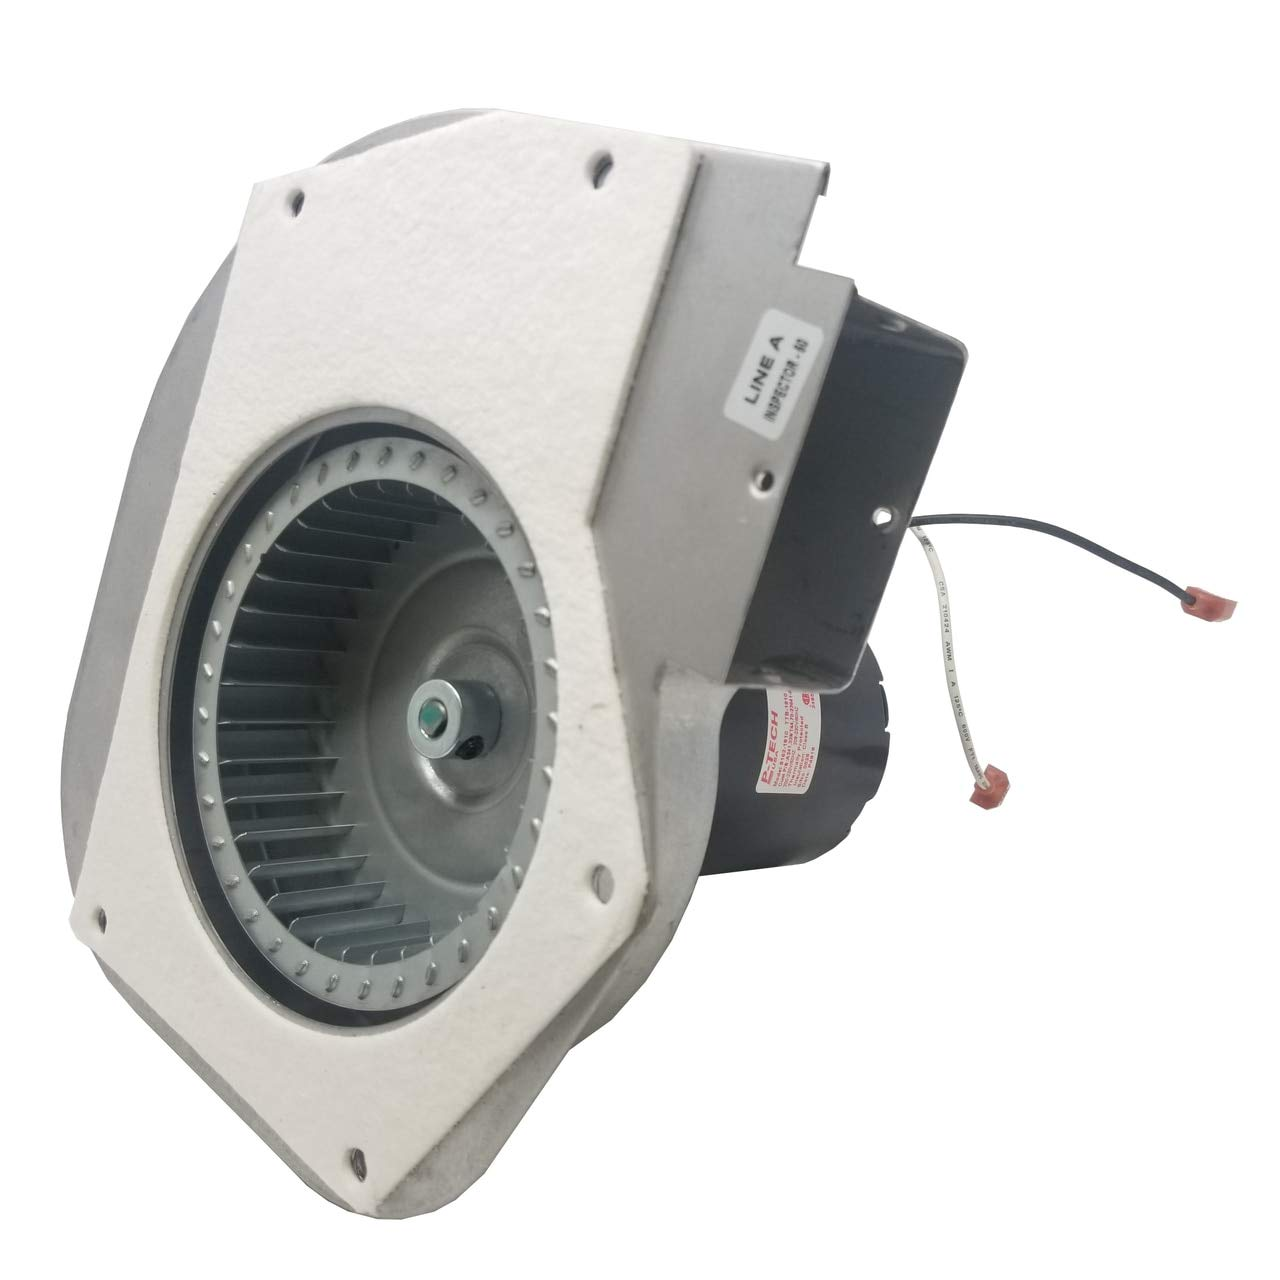 3.3 Inch Diameter Permanent Split Capacitor Centrifugal Blower | Replaces: Fasco A241 & Rheem/Ruud 7021-9567, 70-23641-81 by P-Tech (Image #2)